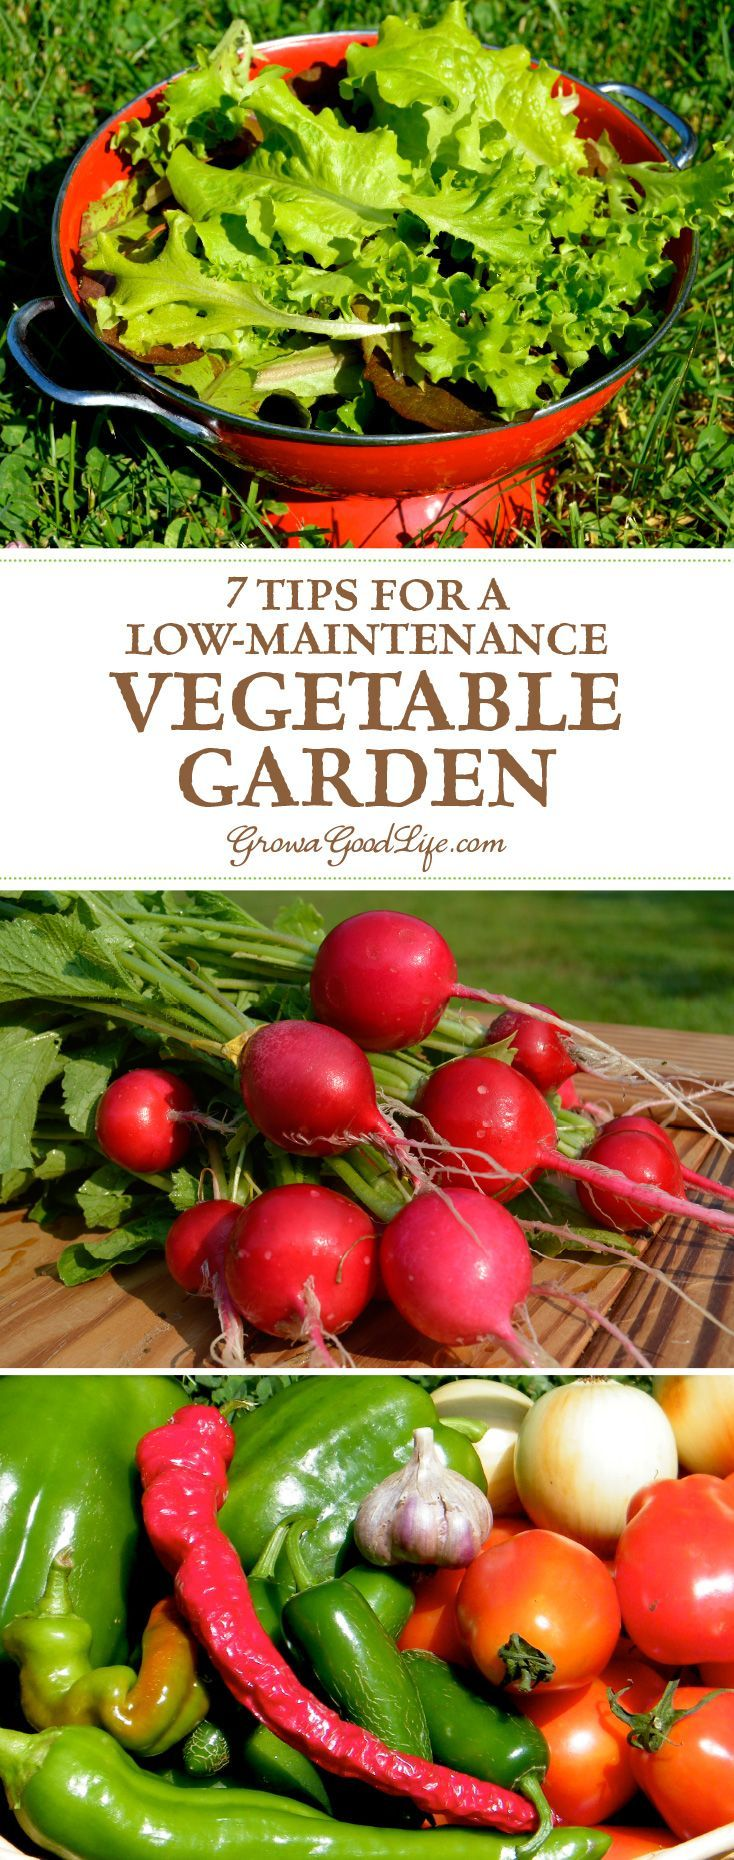 Food garden pictures - 7 Tips For A Low Maintenance Vegetable Garden